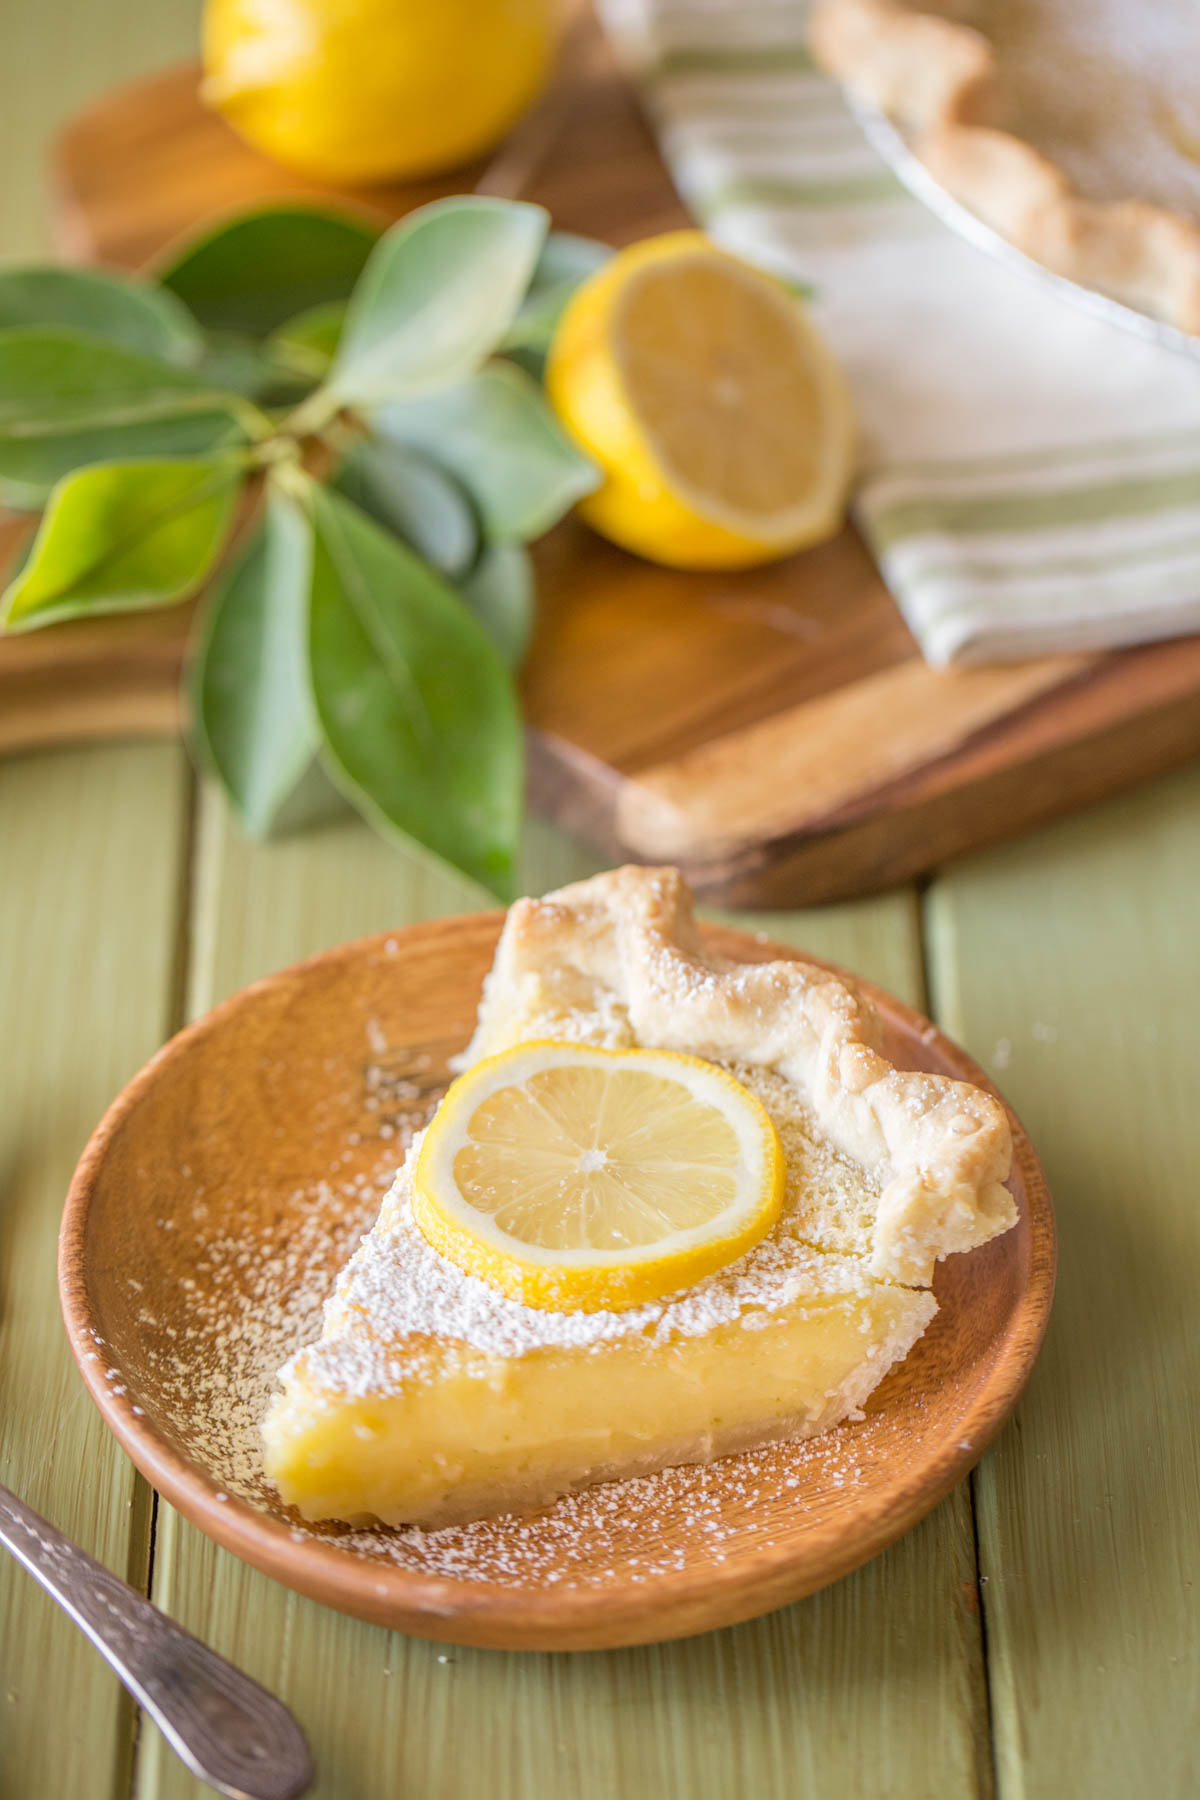 A slice of Whole Lemon Pie dusted with powdered sugar and topped with a lemon slice, on a plate.